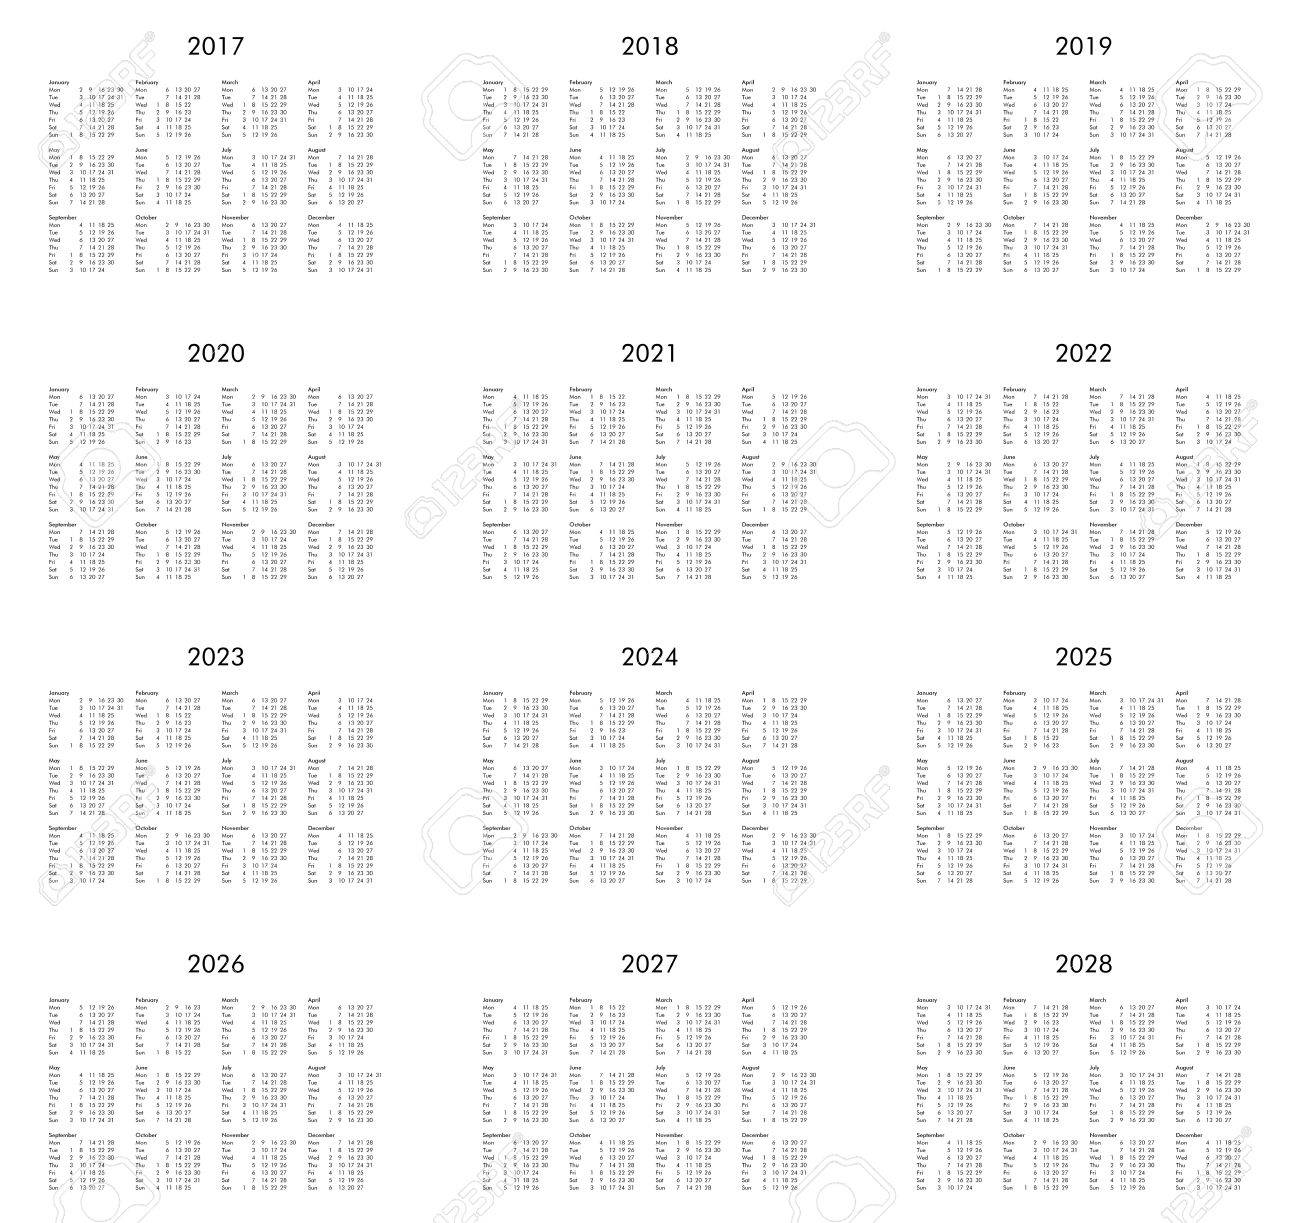 Calendrier 2017 2021 2022 2021 Calendar Of Years 2017, 2018, 2019, 2020, 2021, 2022, 2023, 2024